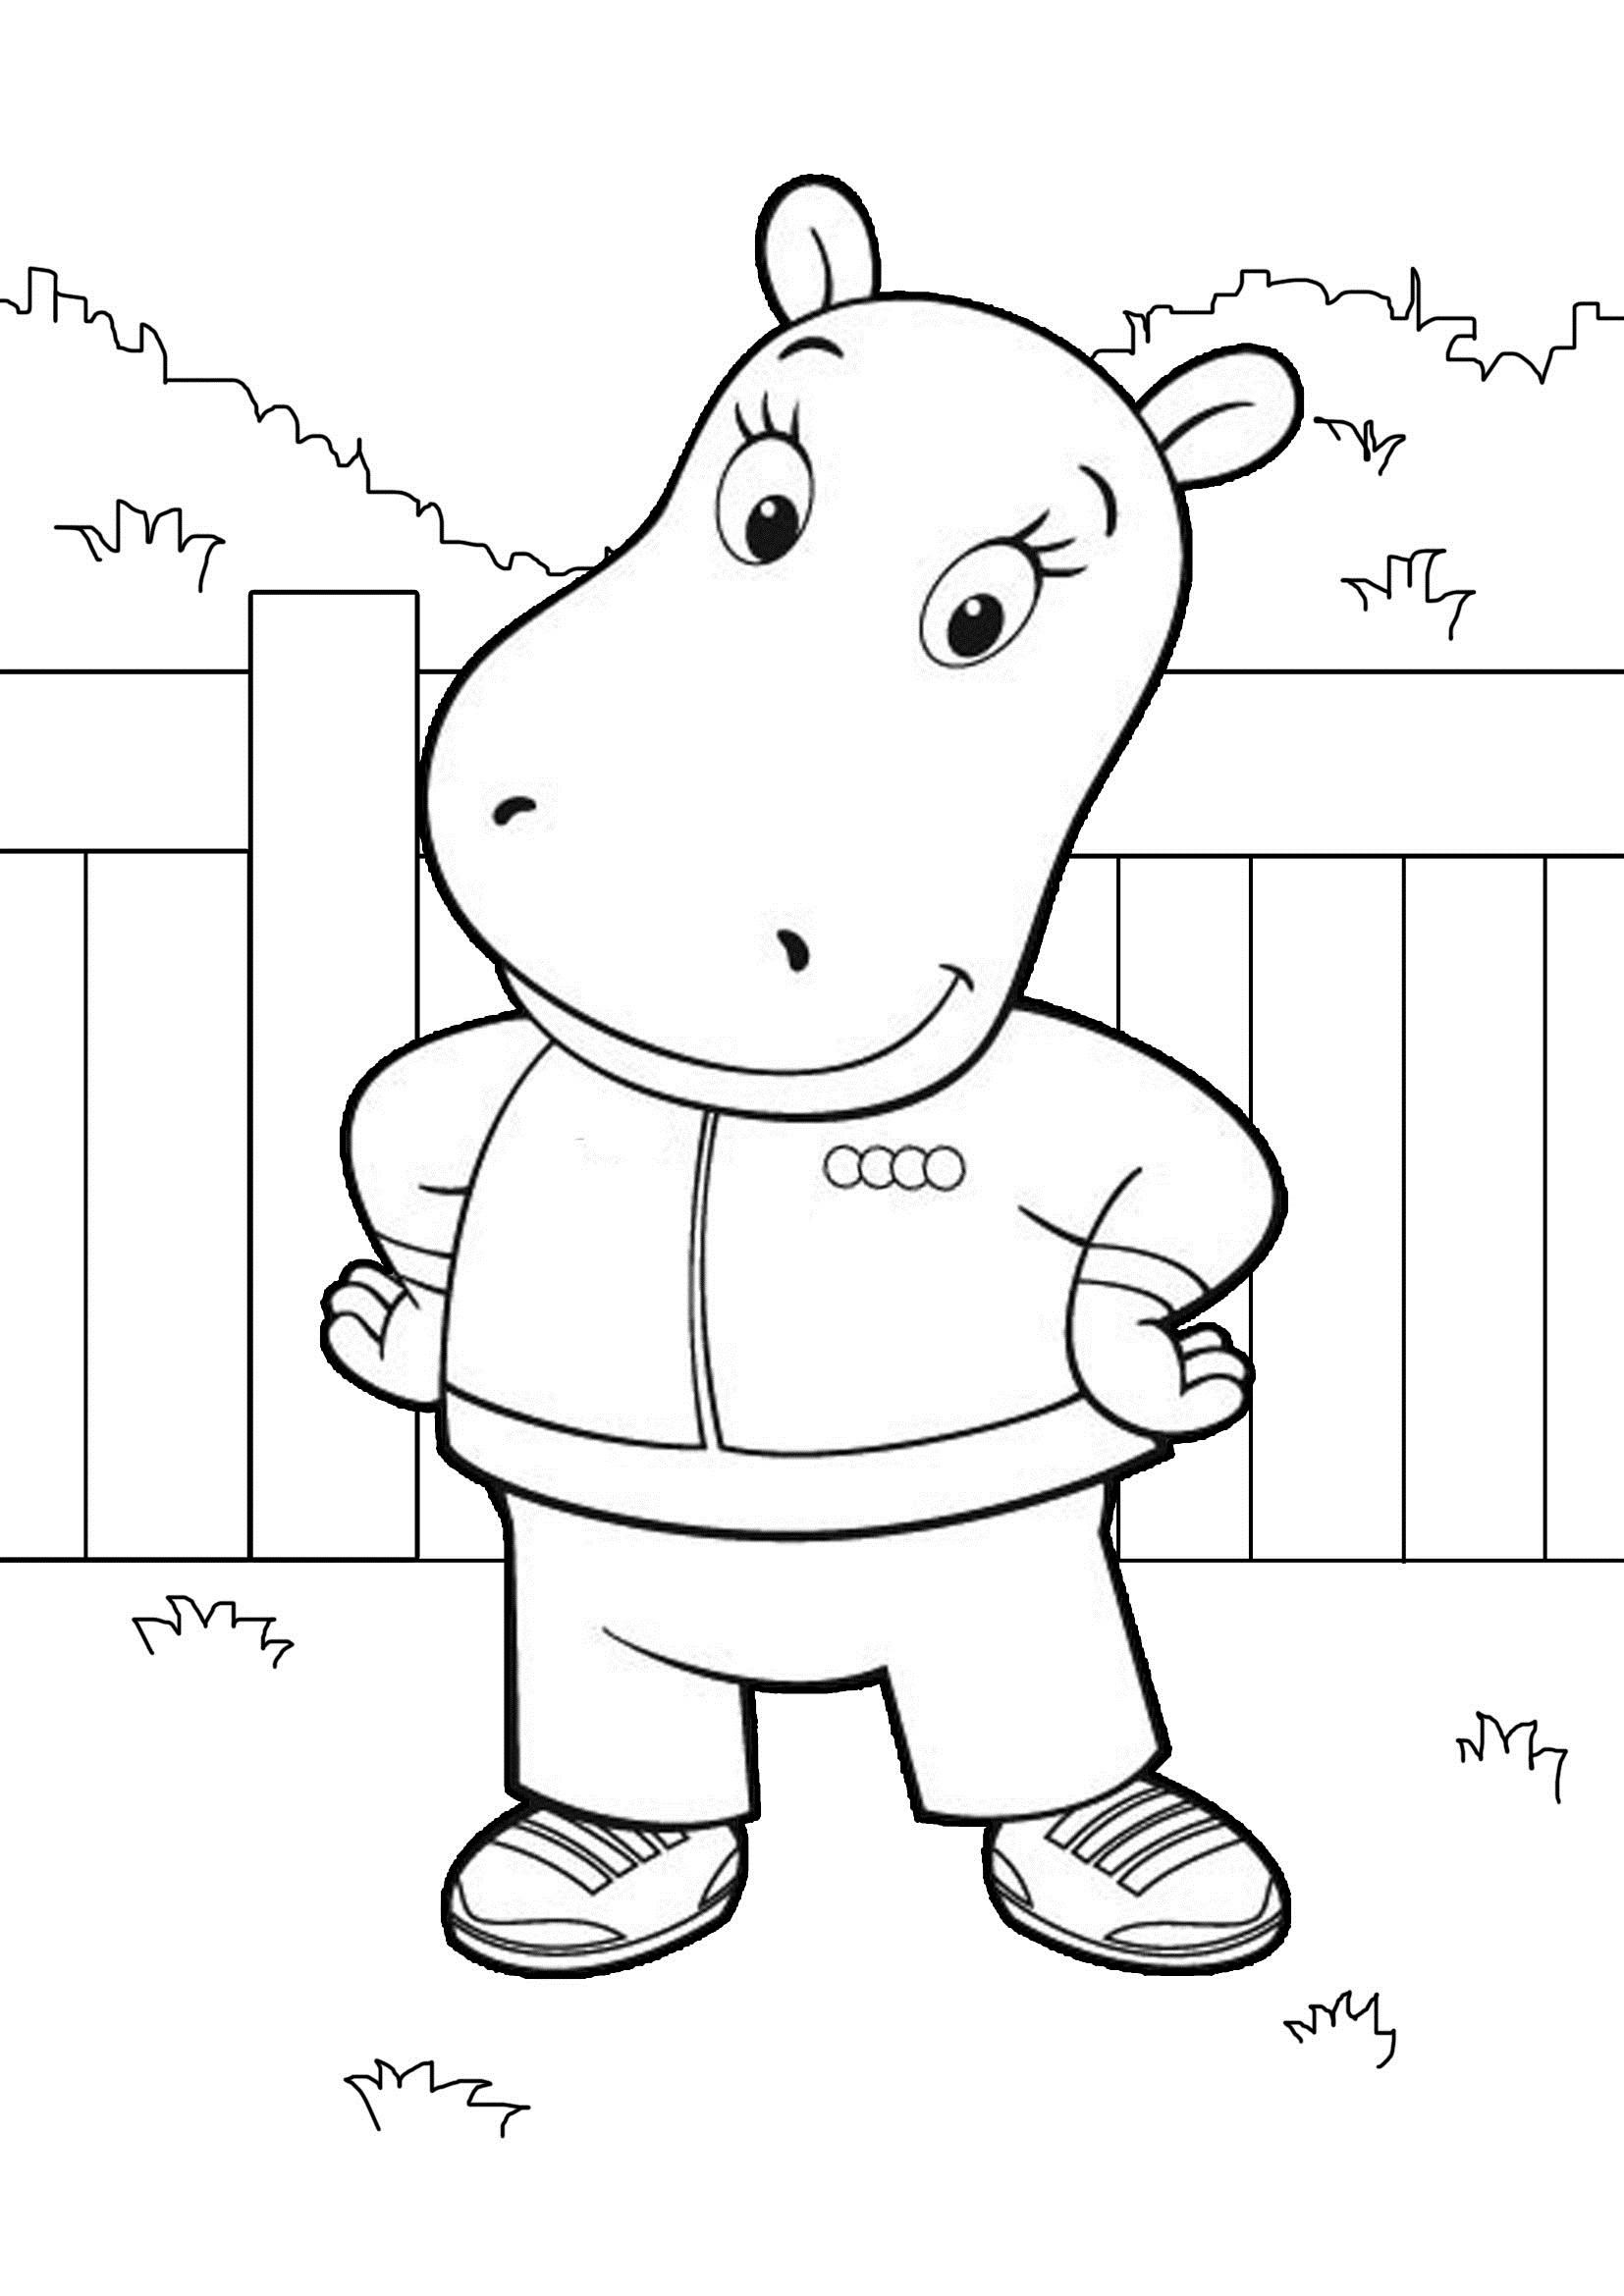 printable coloring cartoon coloring pages to download and print for free coloring printable